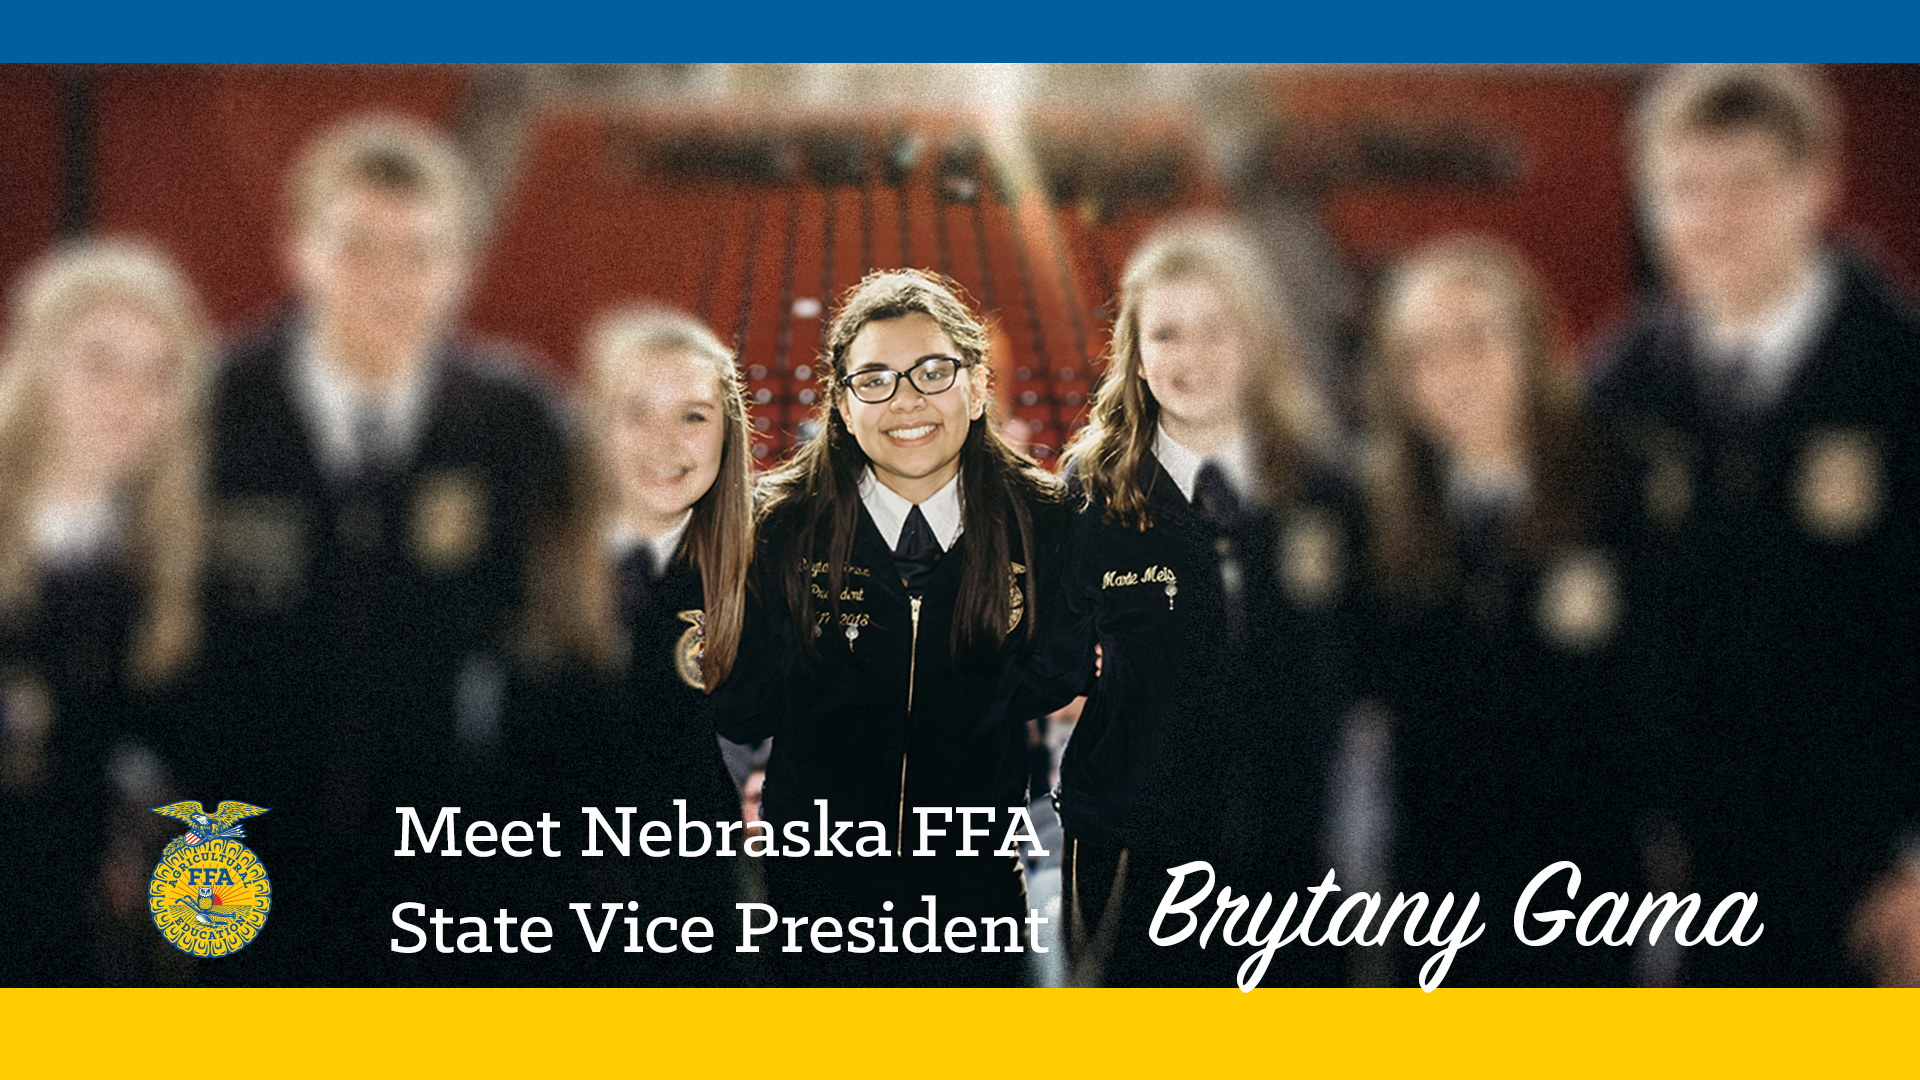 Meet Your 2018-19 Nebraska FFA State Vice President: Brytany Gama